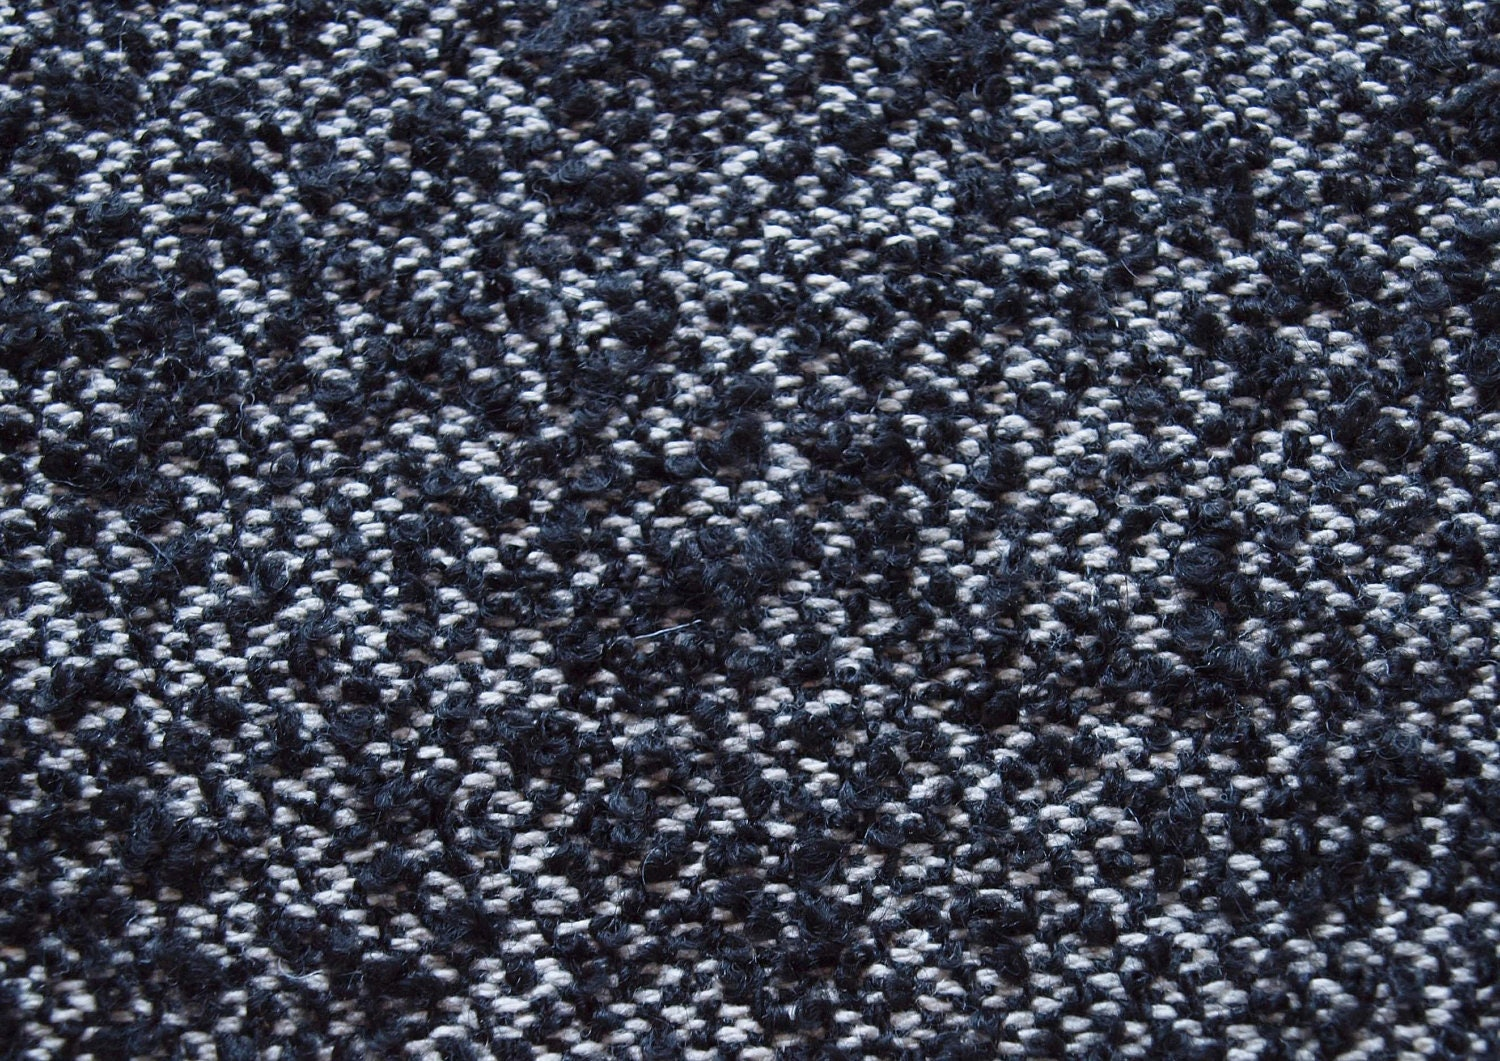 Swatch 3 X 7 Big Tweed Wool Fabric Black And